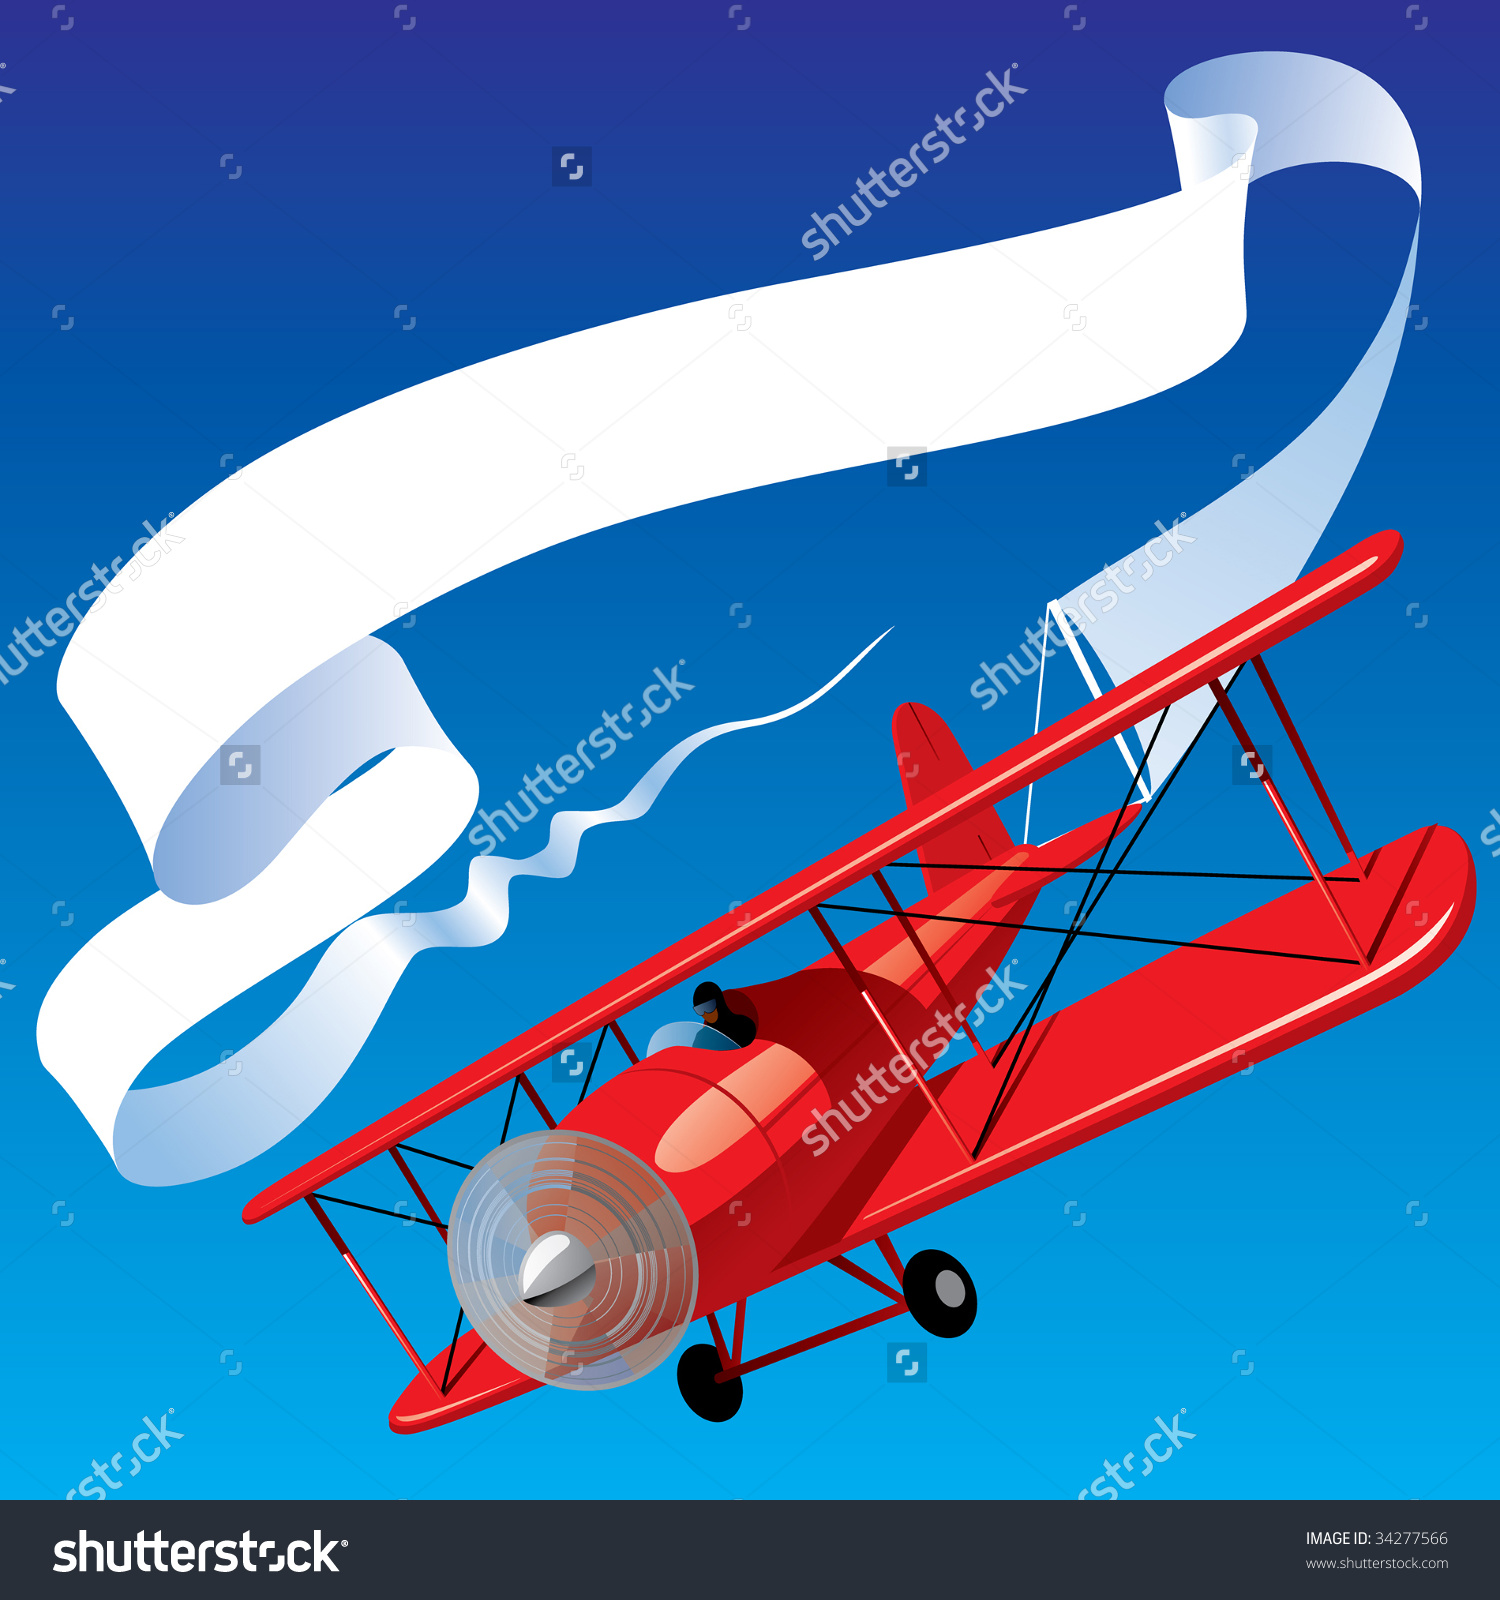 Red plane banner clipart vector black and white library Red plane banner clipart - ClipartFest vector black and white library